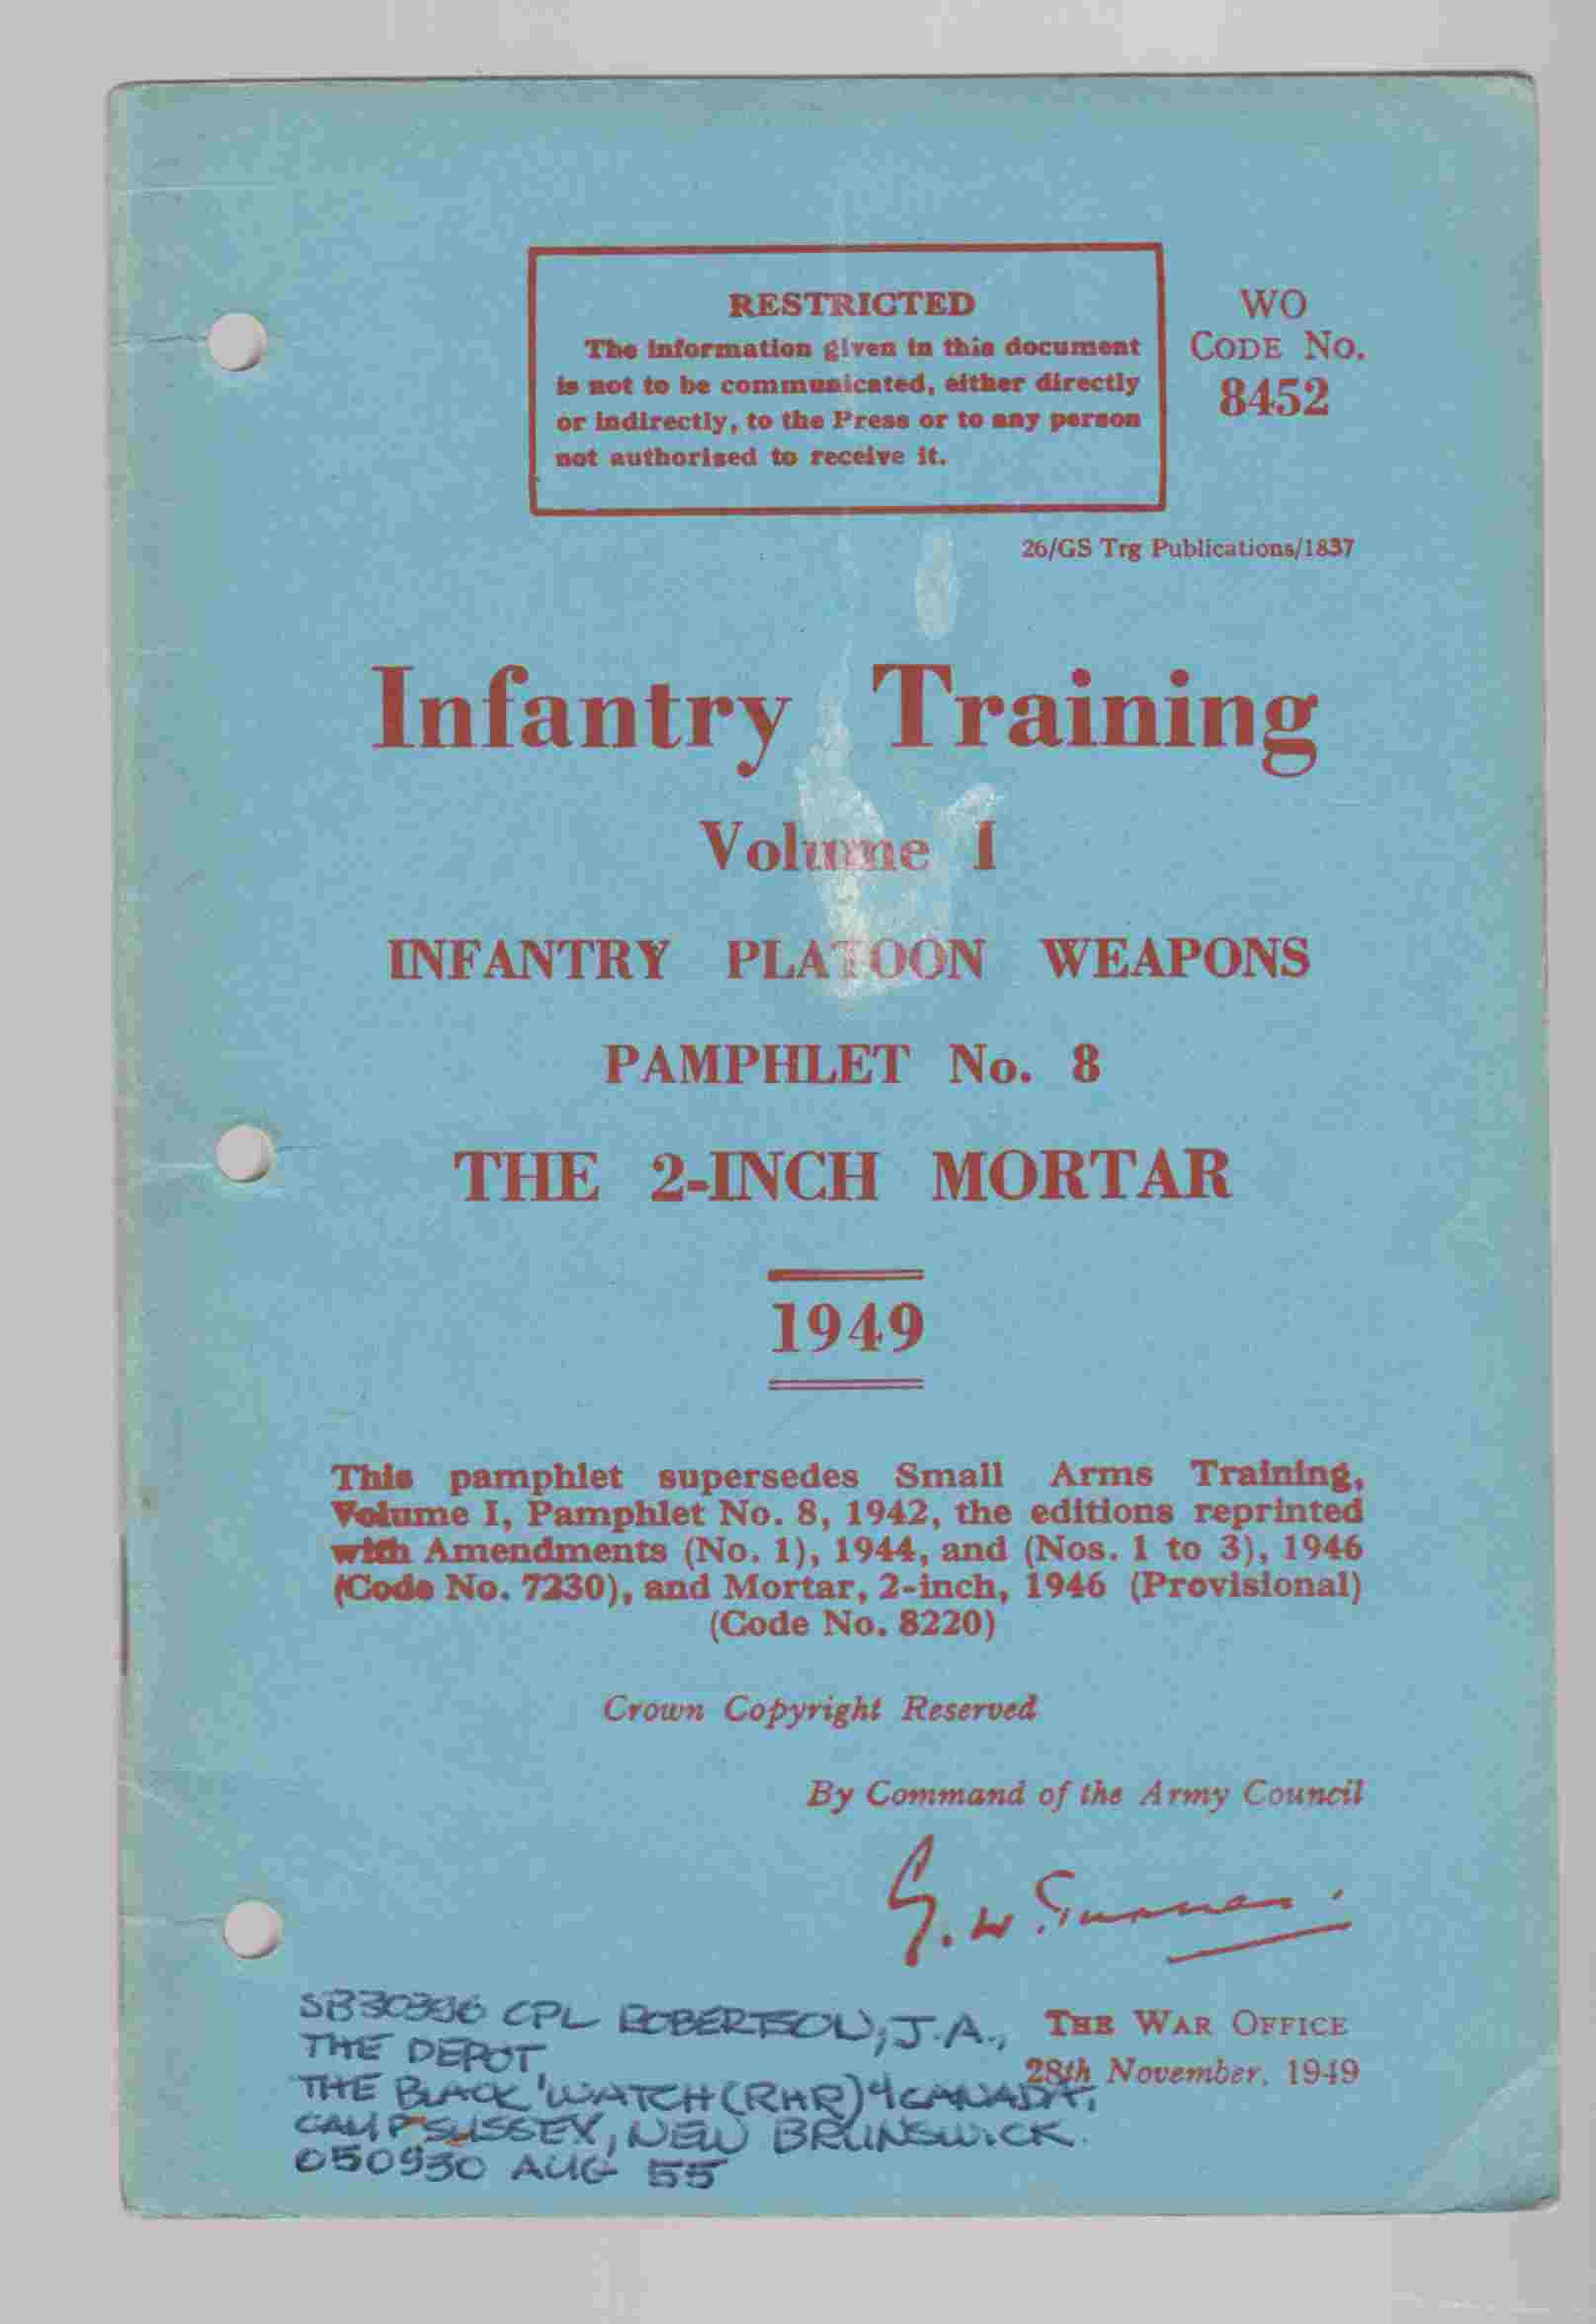 Image for Infantry Training Volume I Infantry Platoon Weapons Pamphlet No. 8 The 2-Inch Mortar 1949